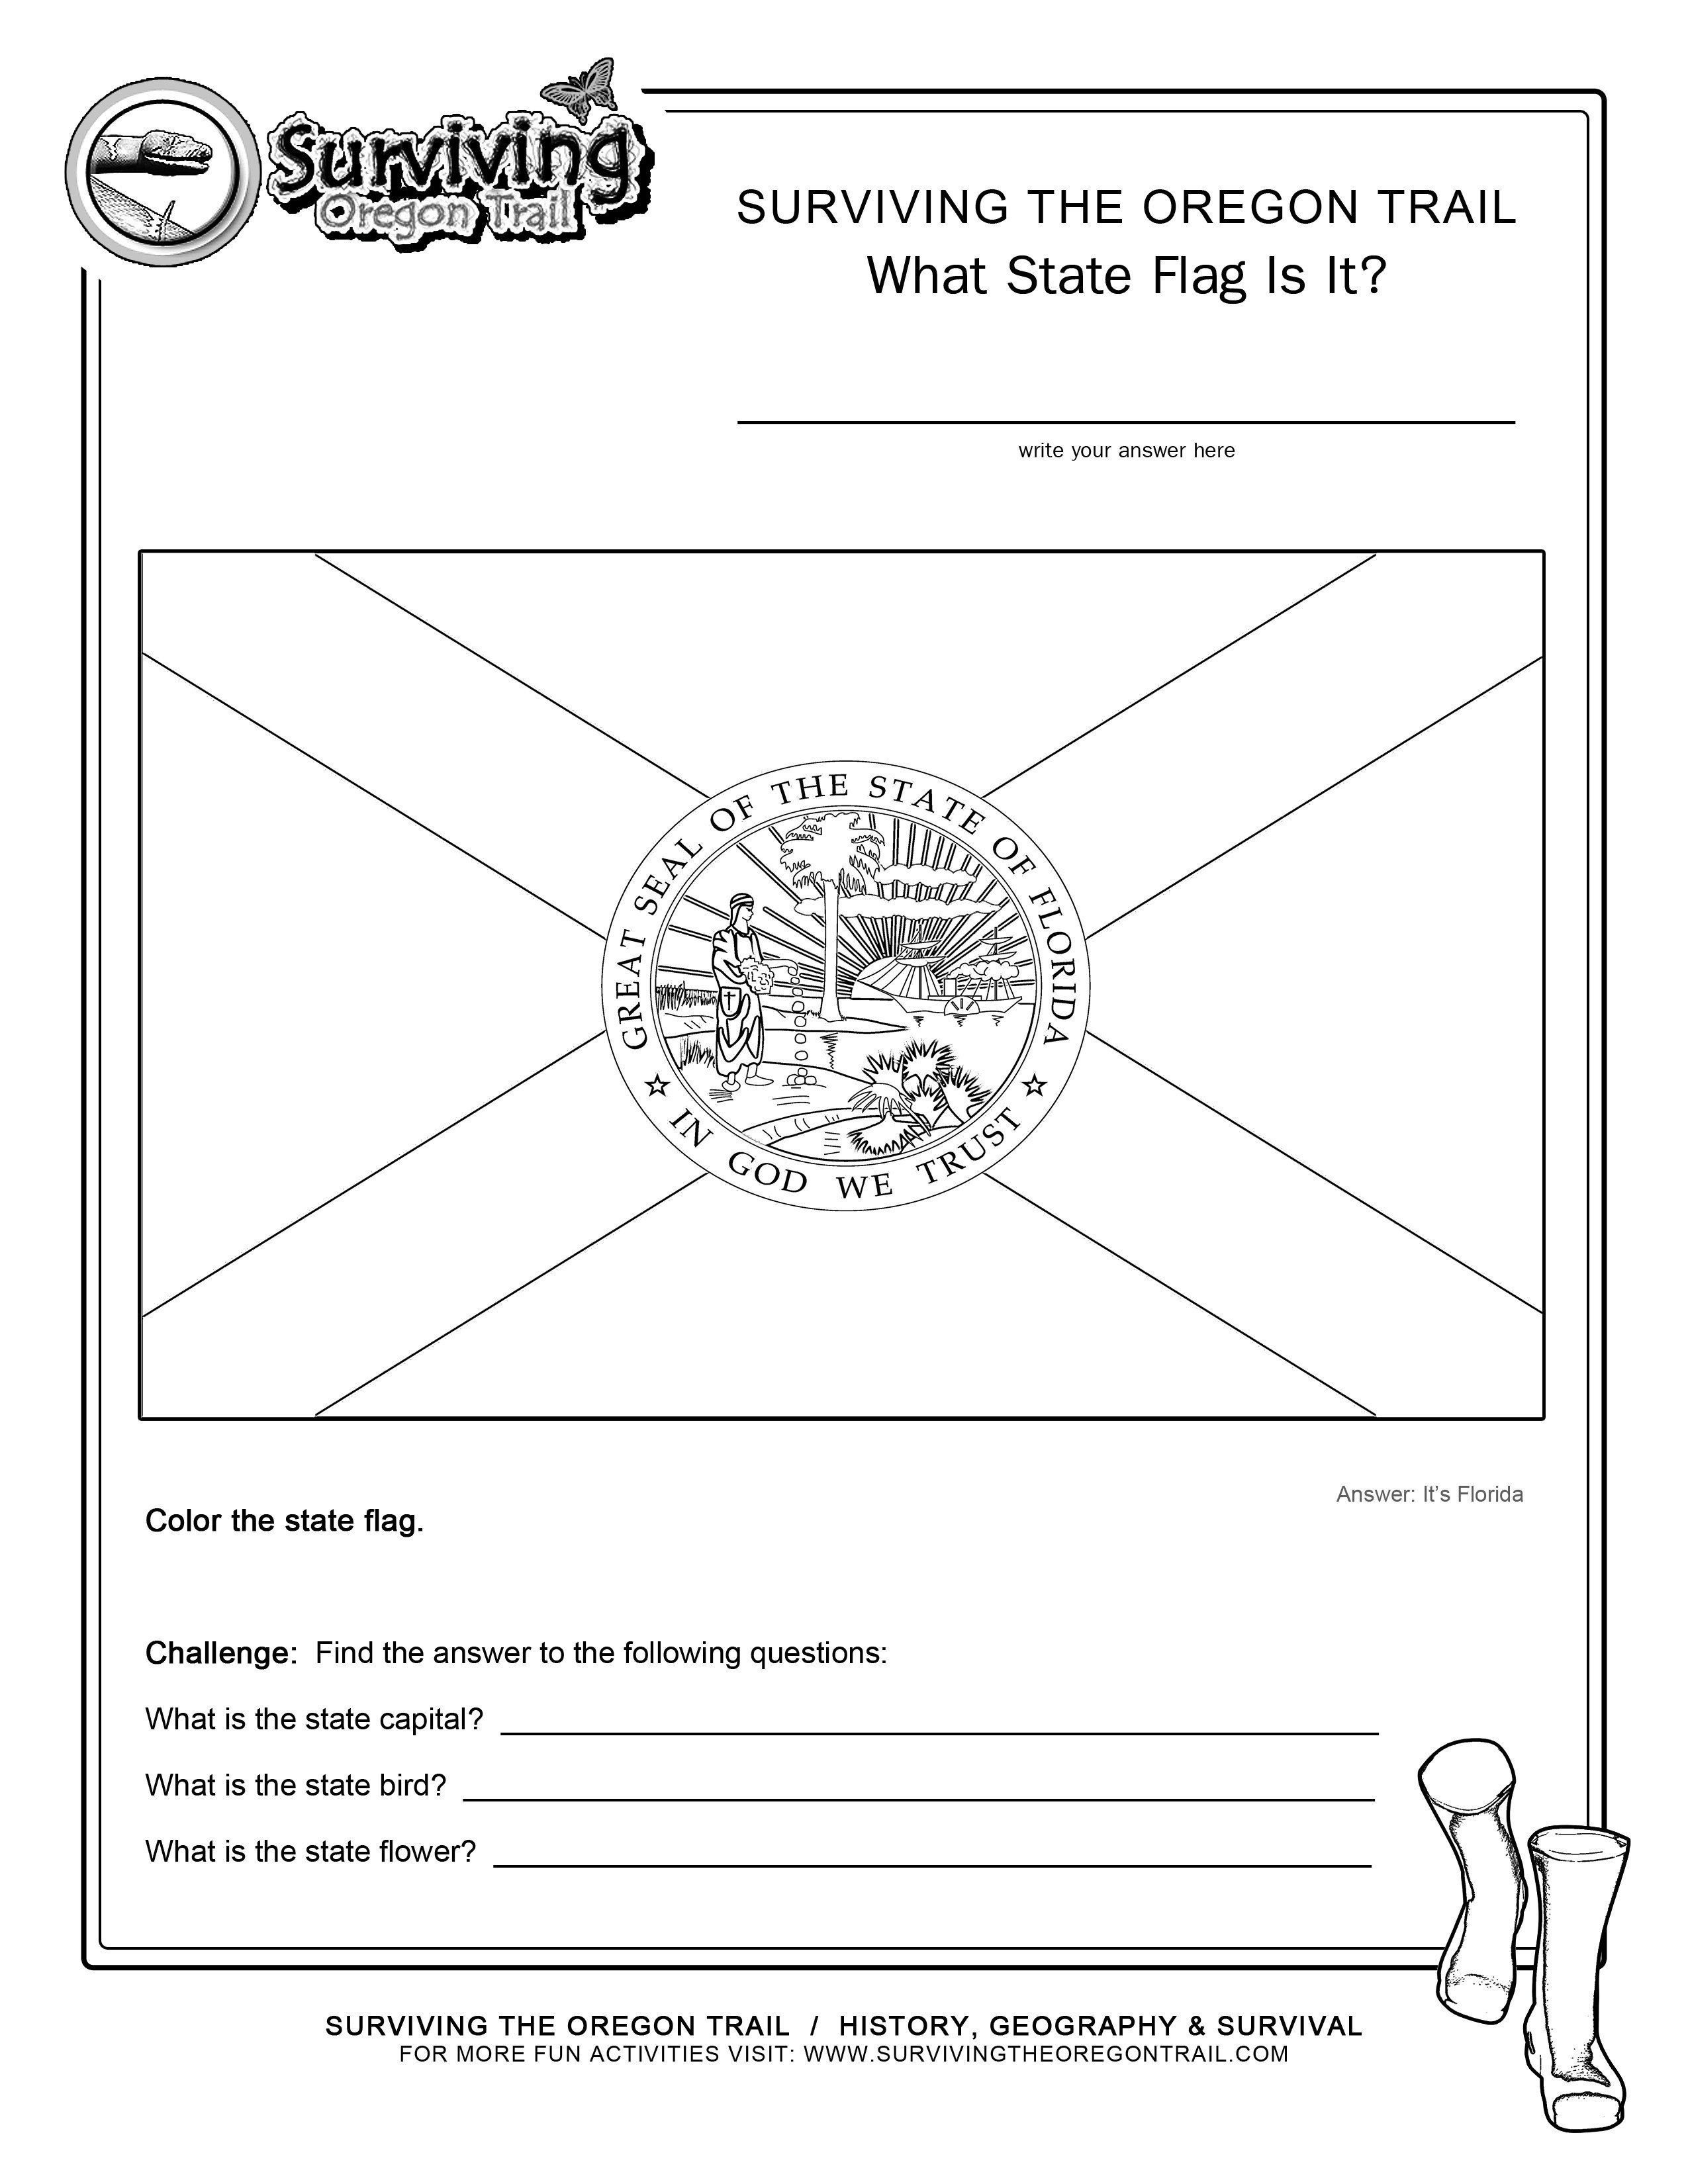 Liberty Bell Coloring Page Awesome Quiver Coloring Pages In 2020